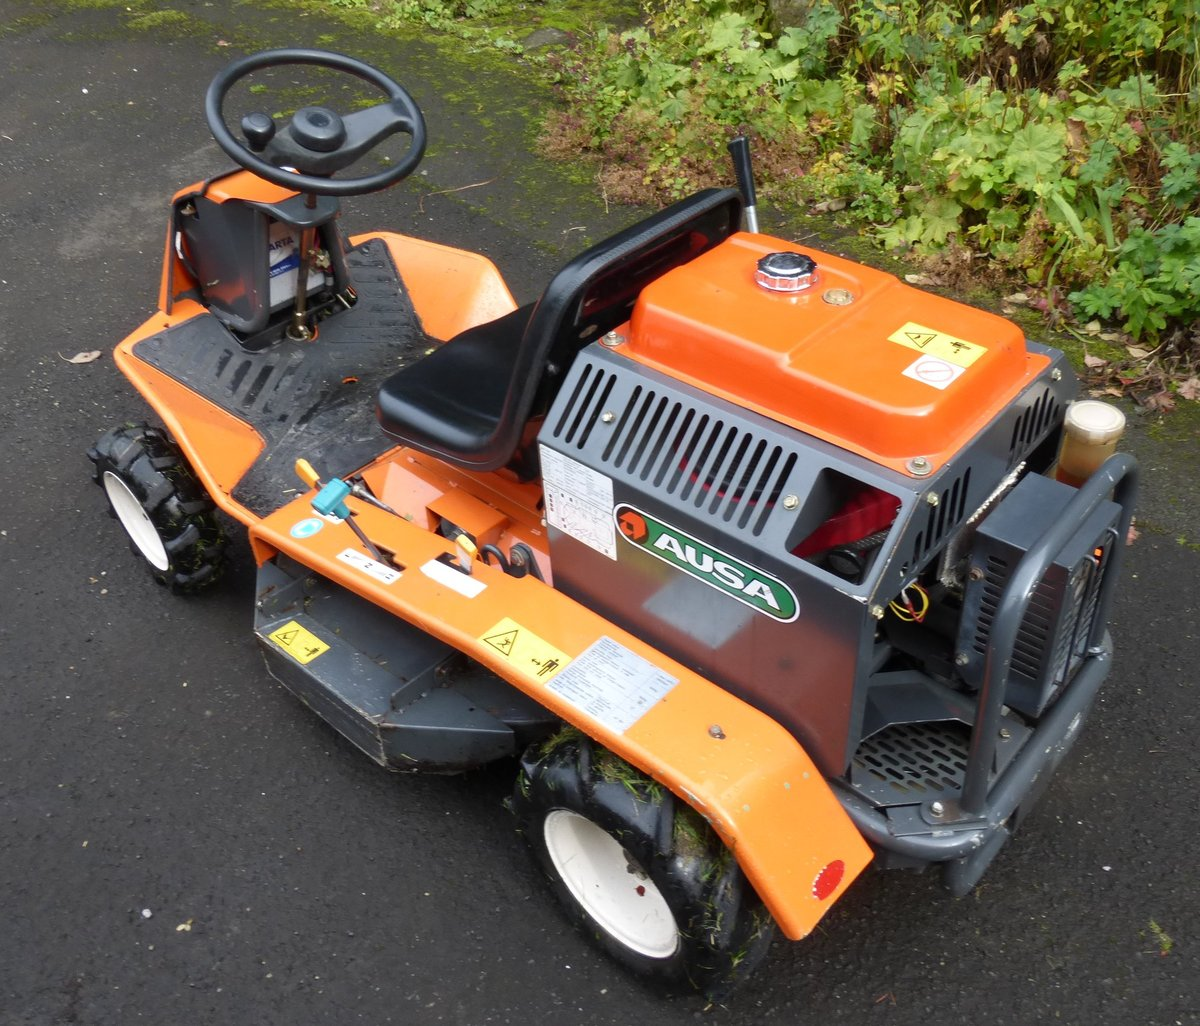 Ausa / Canycom ride on brush cutter mower For Sale | Car And